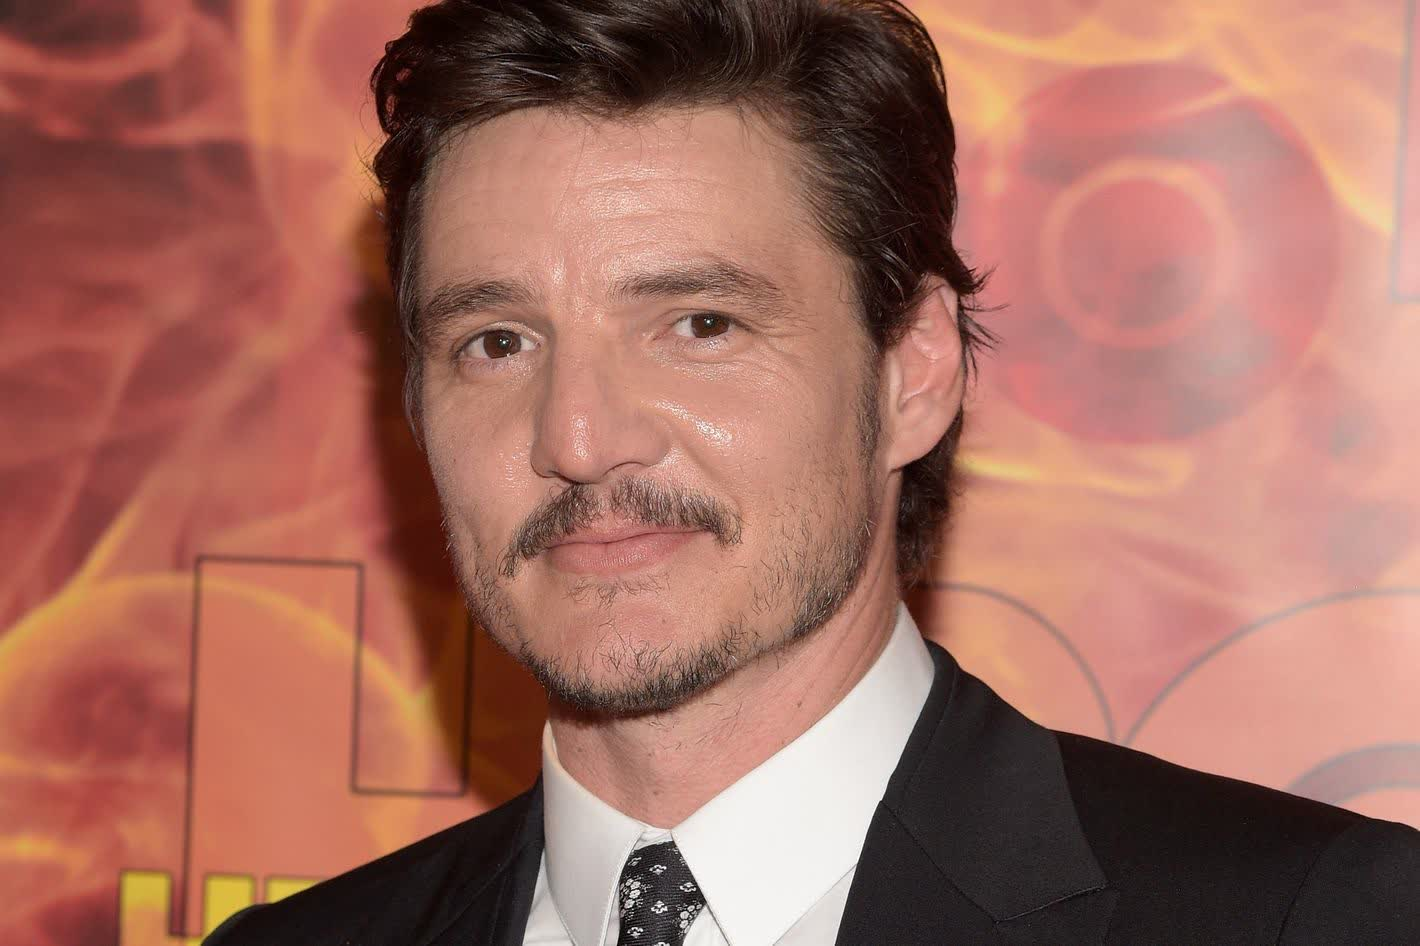 The Mandalorian's Pedro Pascal cast as Joel in Last of Us HBO series